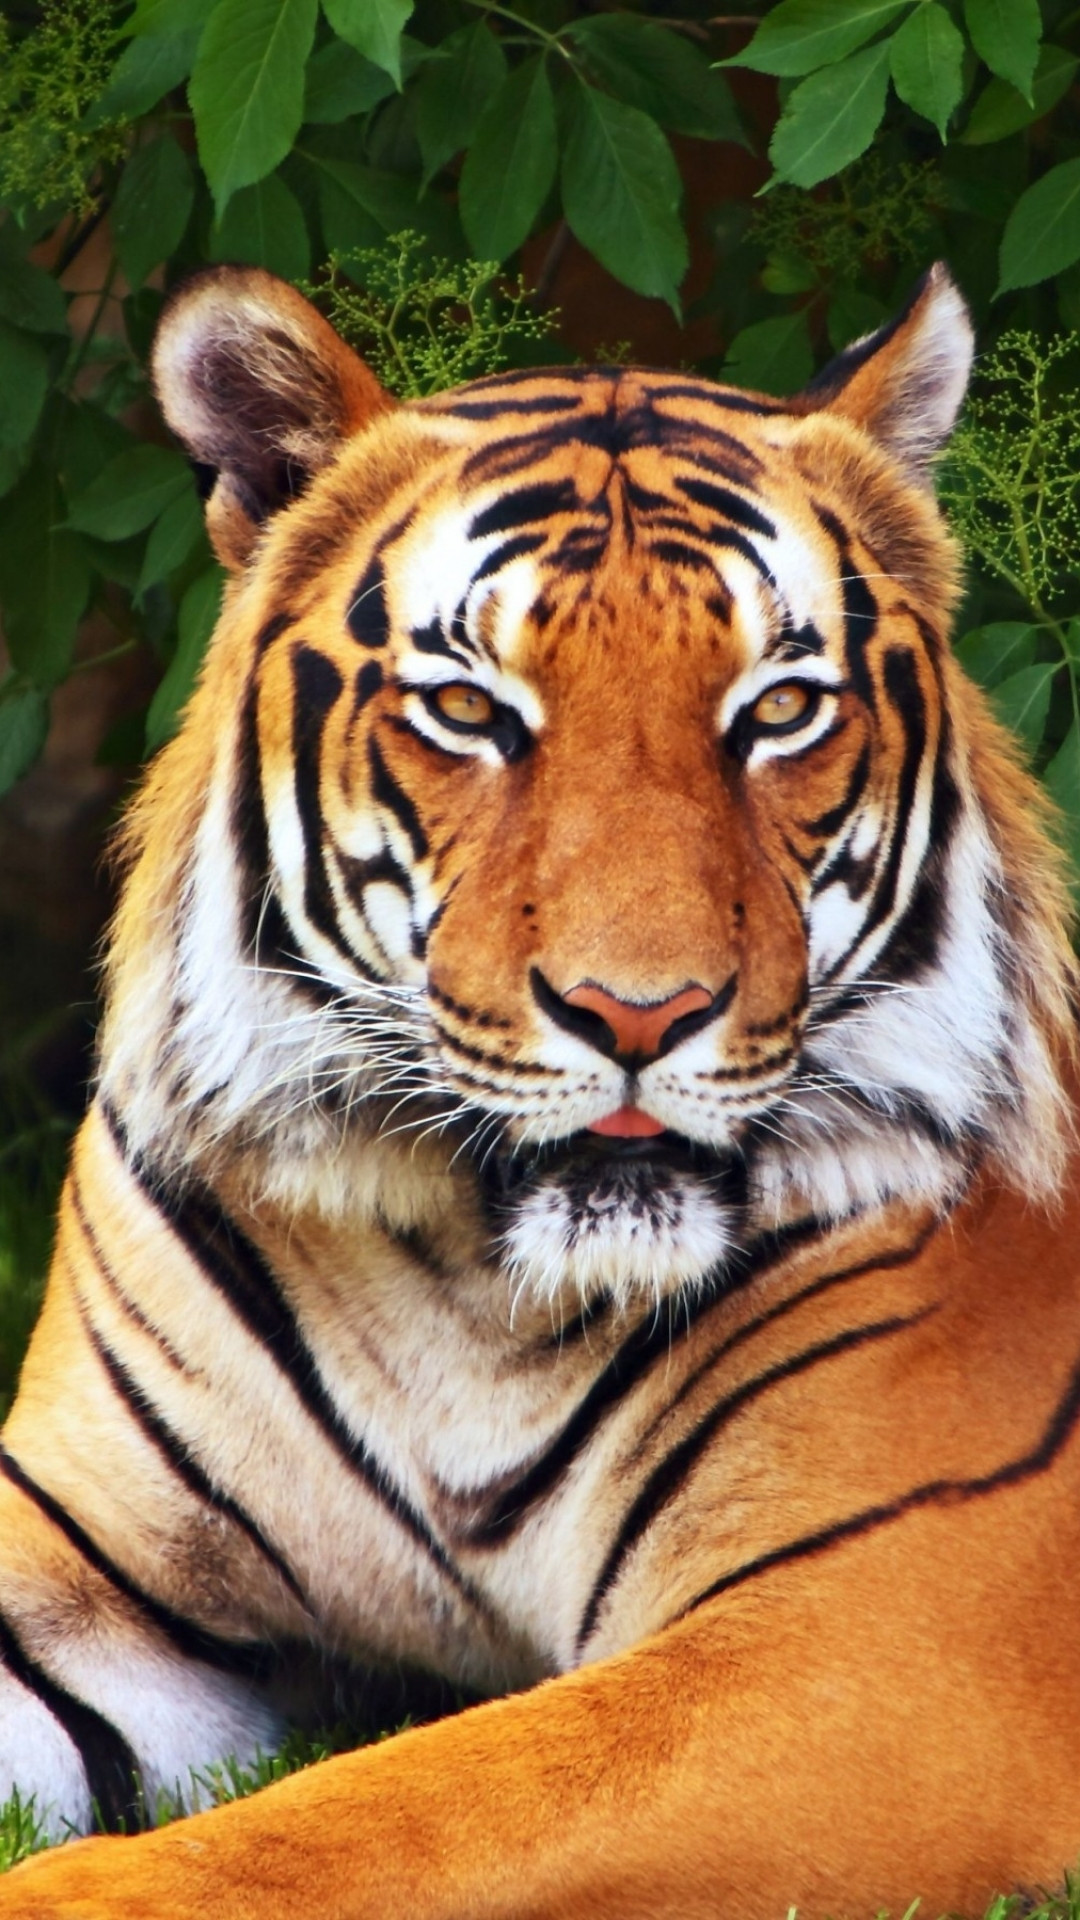 tiger wallpaper iphone